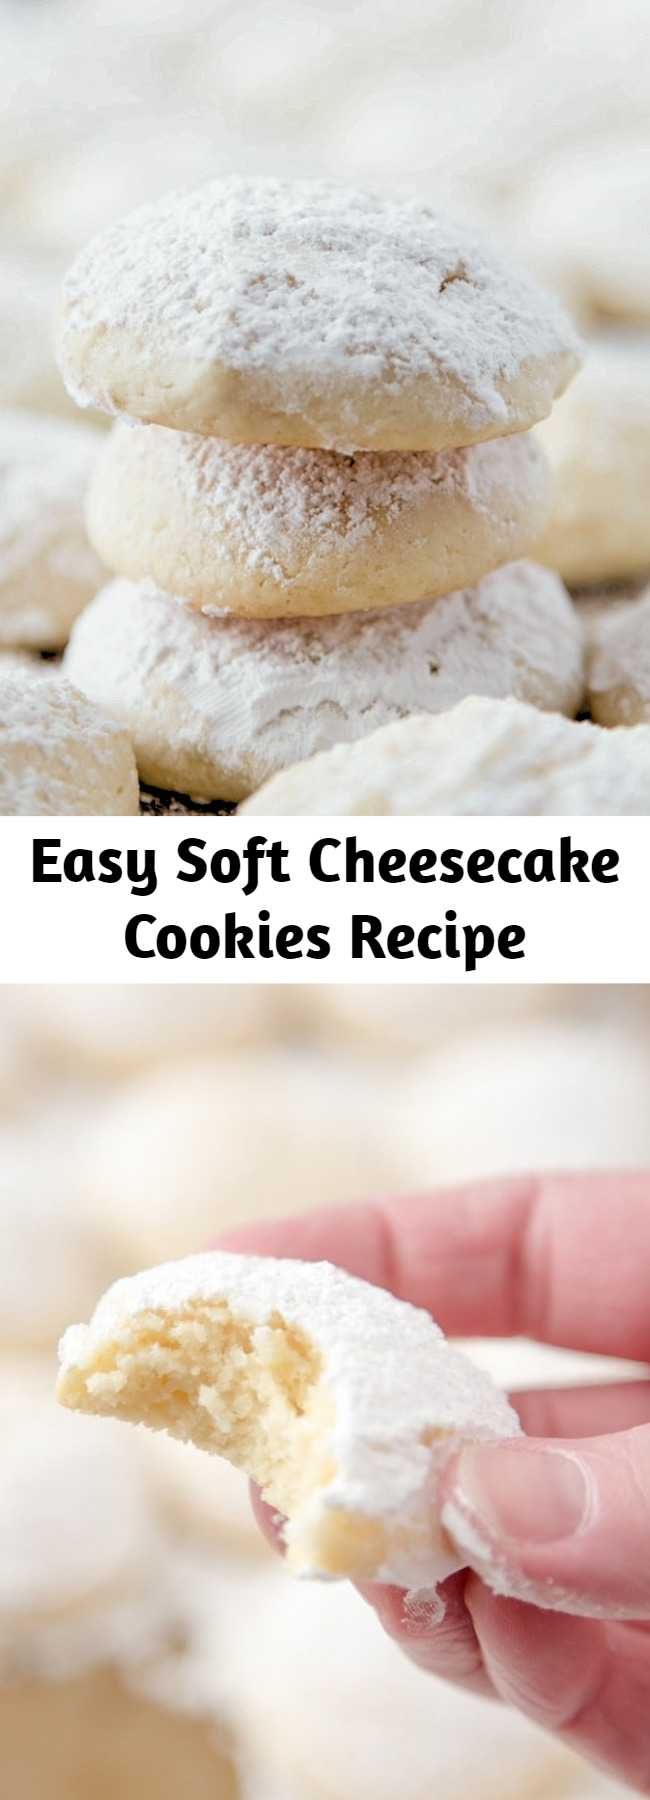 Easy Soft Cheesecake Cookies Recipe - These Cheesecake Cookies are so creamy and tender. It's a delicious cookie recipe that's not too sweet but totally addictive!